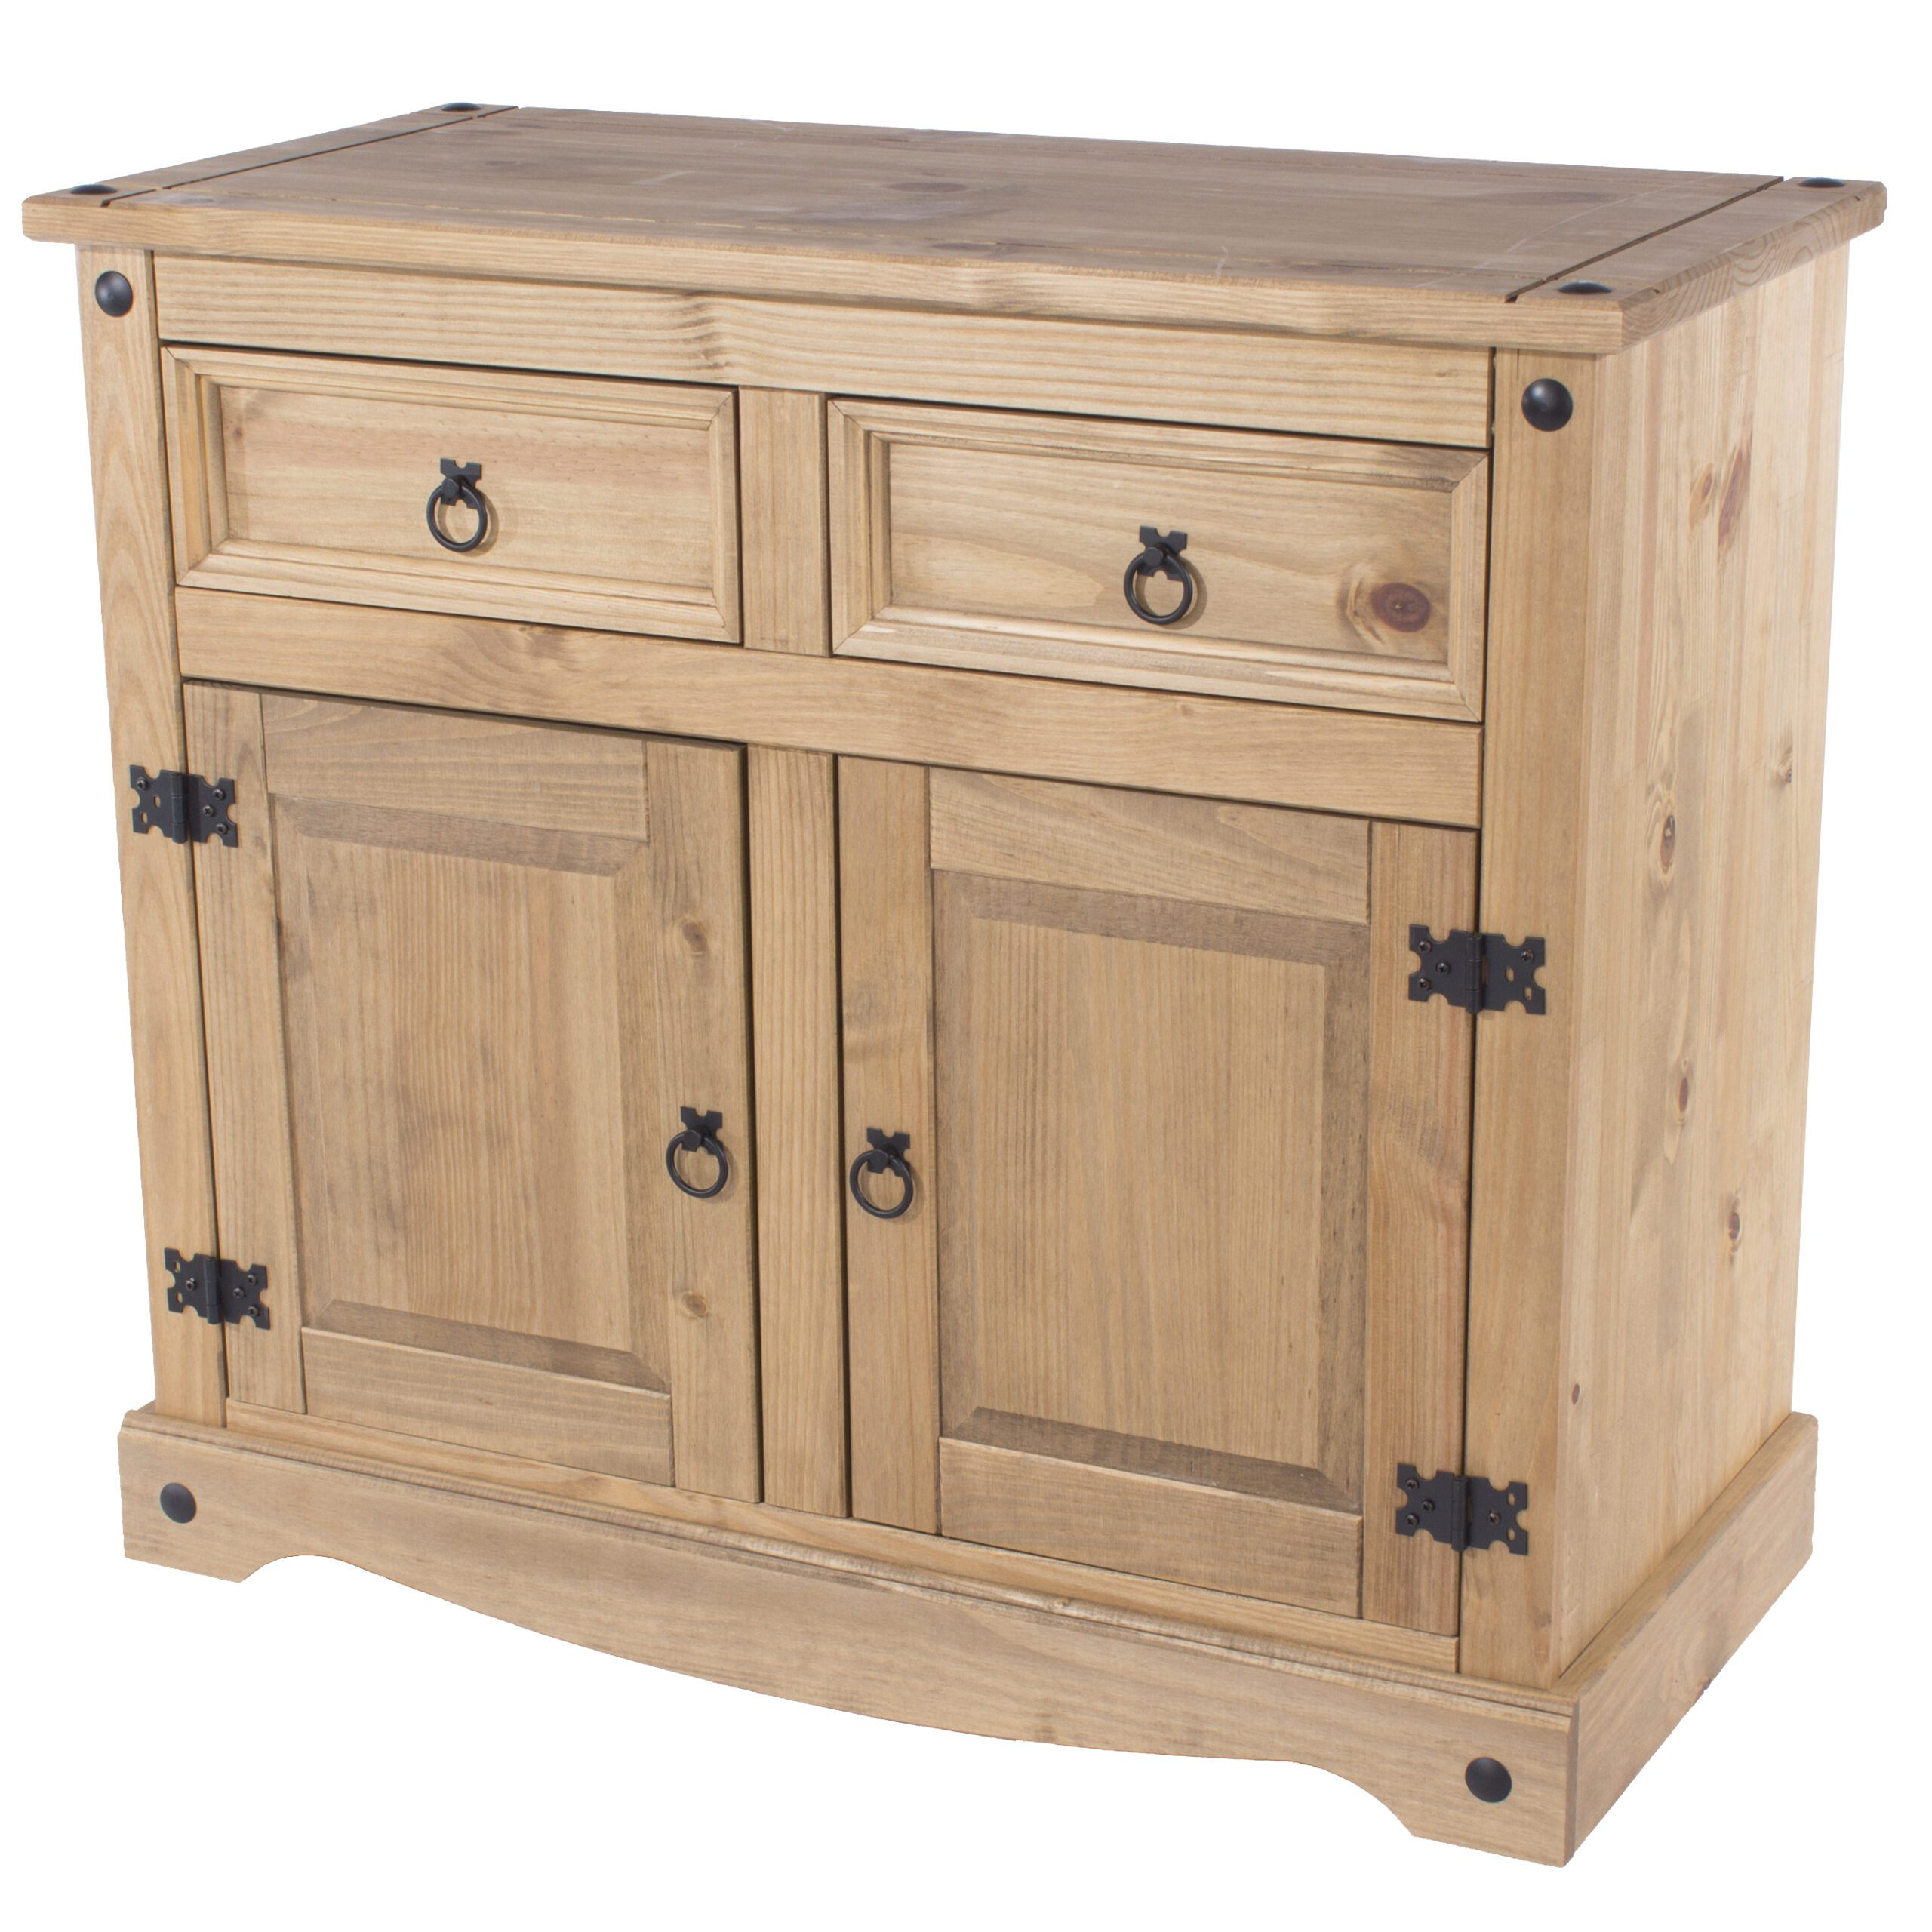 Cortan small sideboard